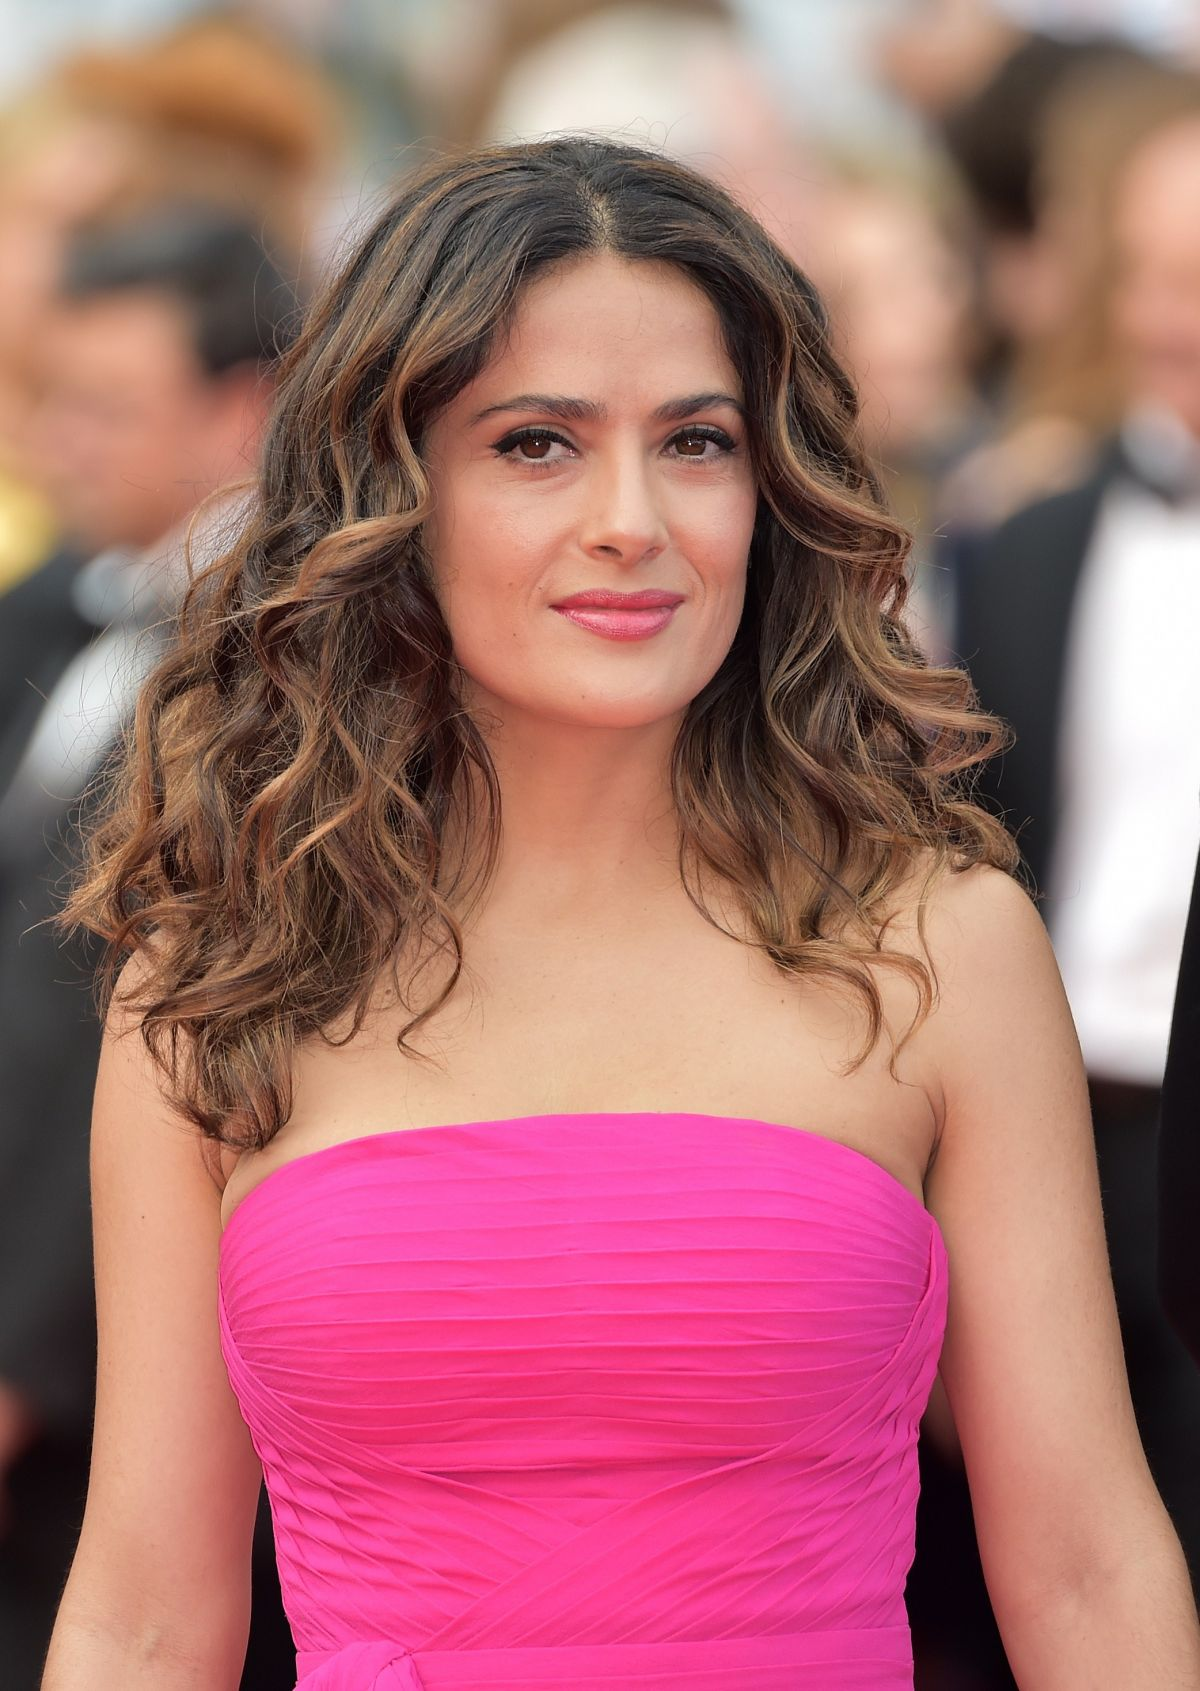 SALMA HAYEK at The Prohet Premiere at Cannes Film Festival